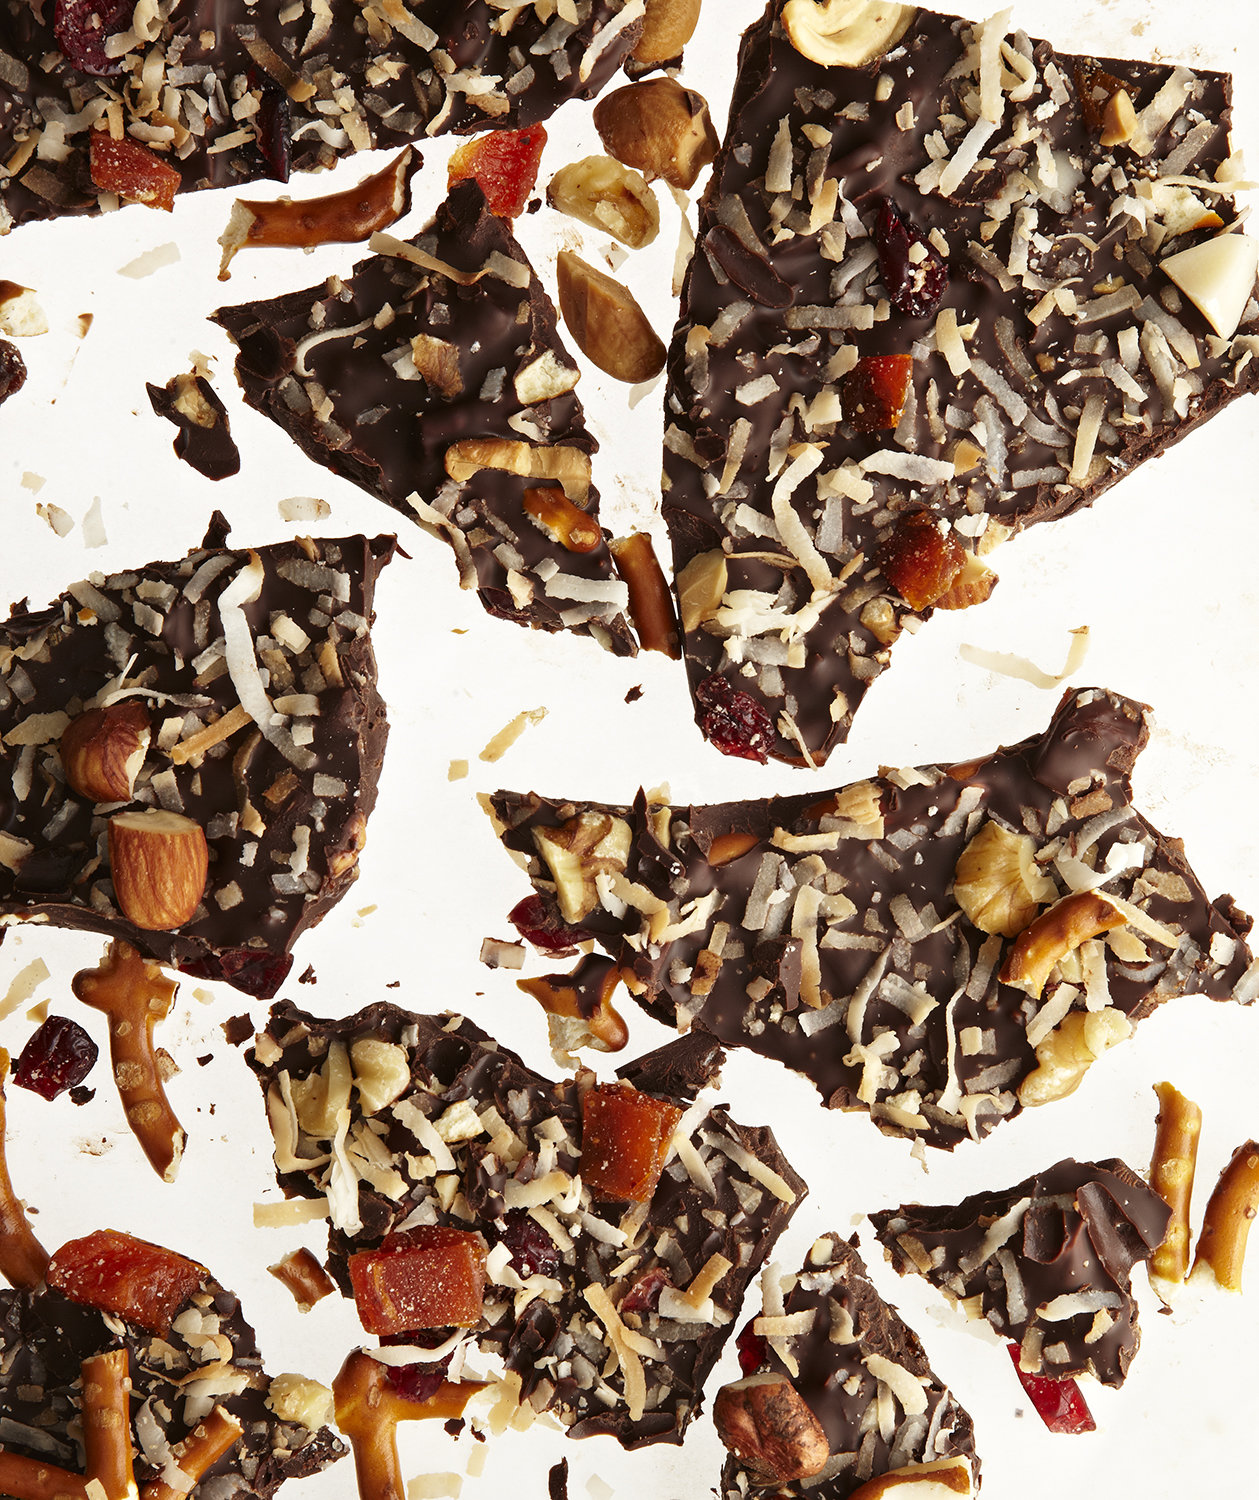 chocolate-bark-kitchen-sink